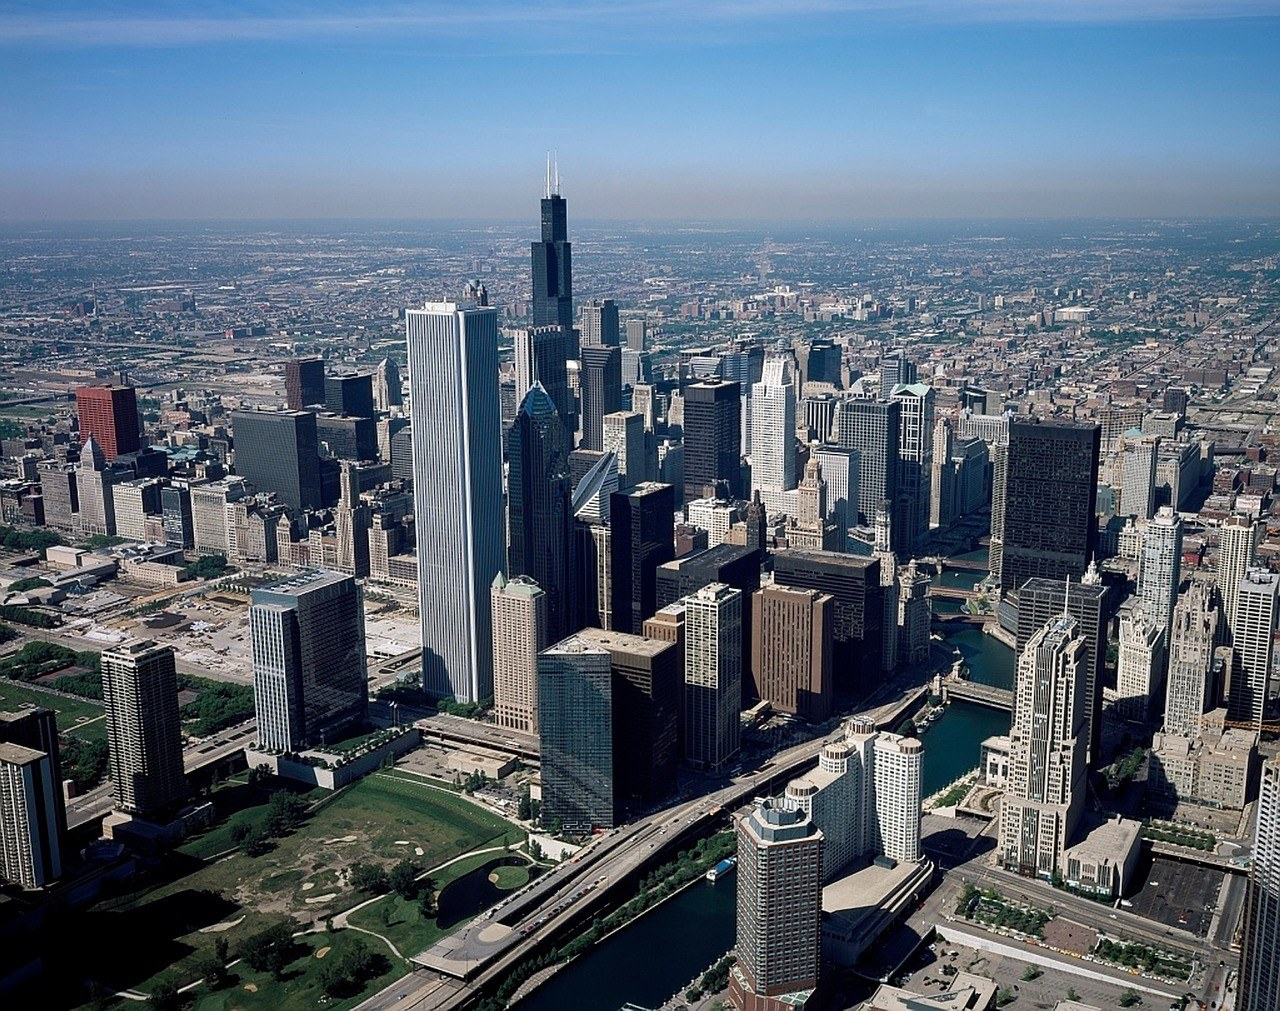 Chicago from above (Credit: tpsdave, Pixabay)